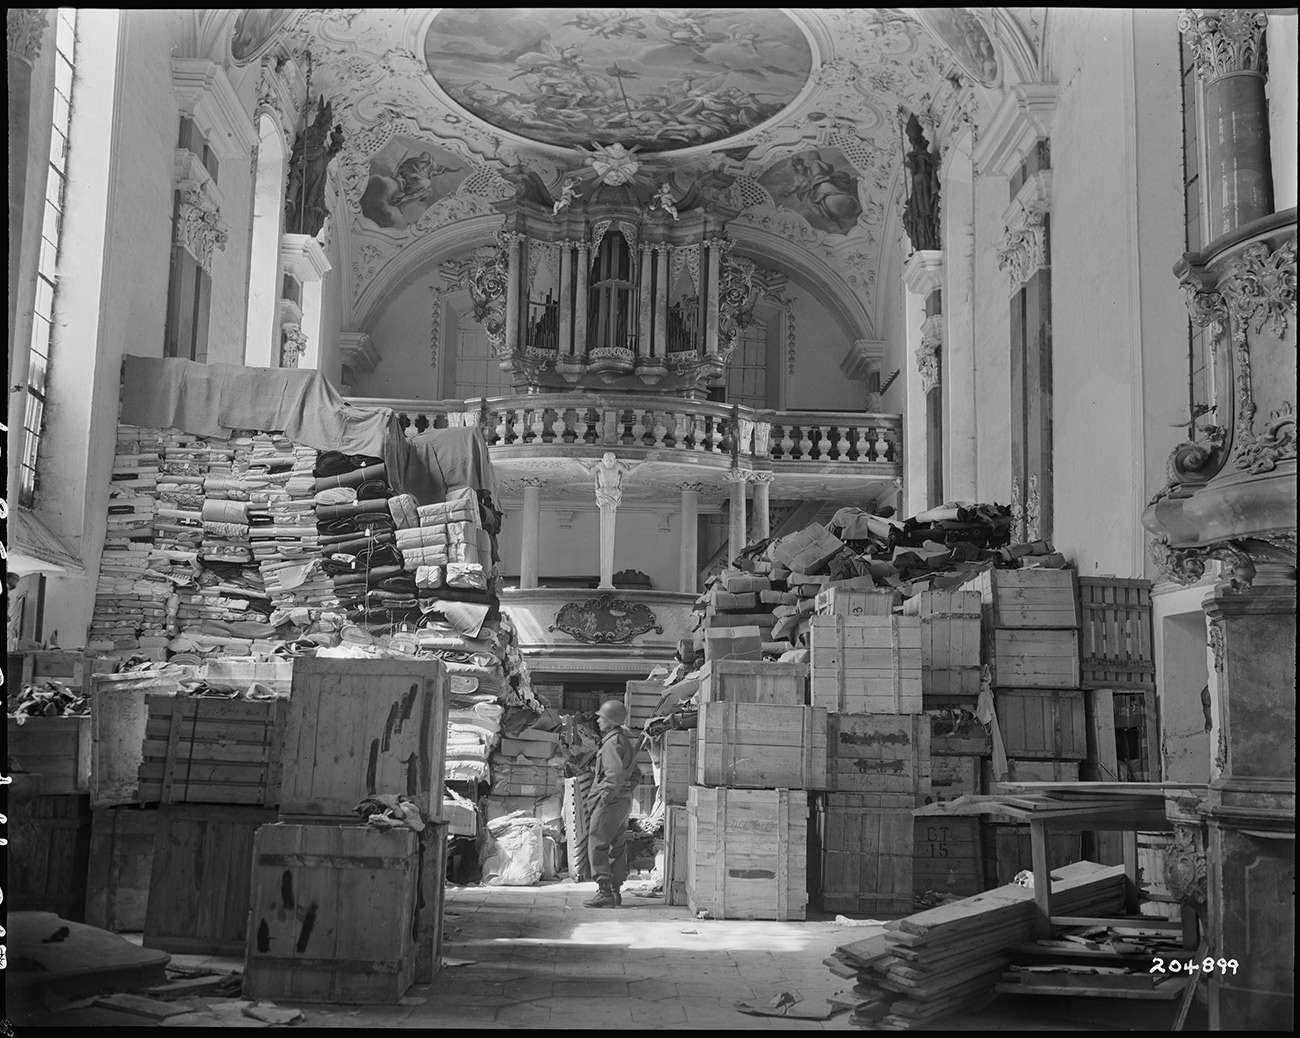 Black and white photograph of a Baroque church interior piled high with wooden crates of stolen art